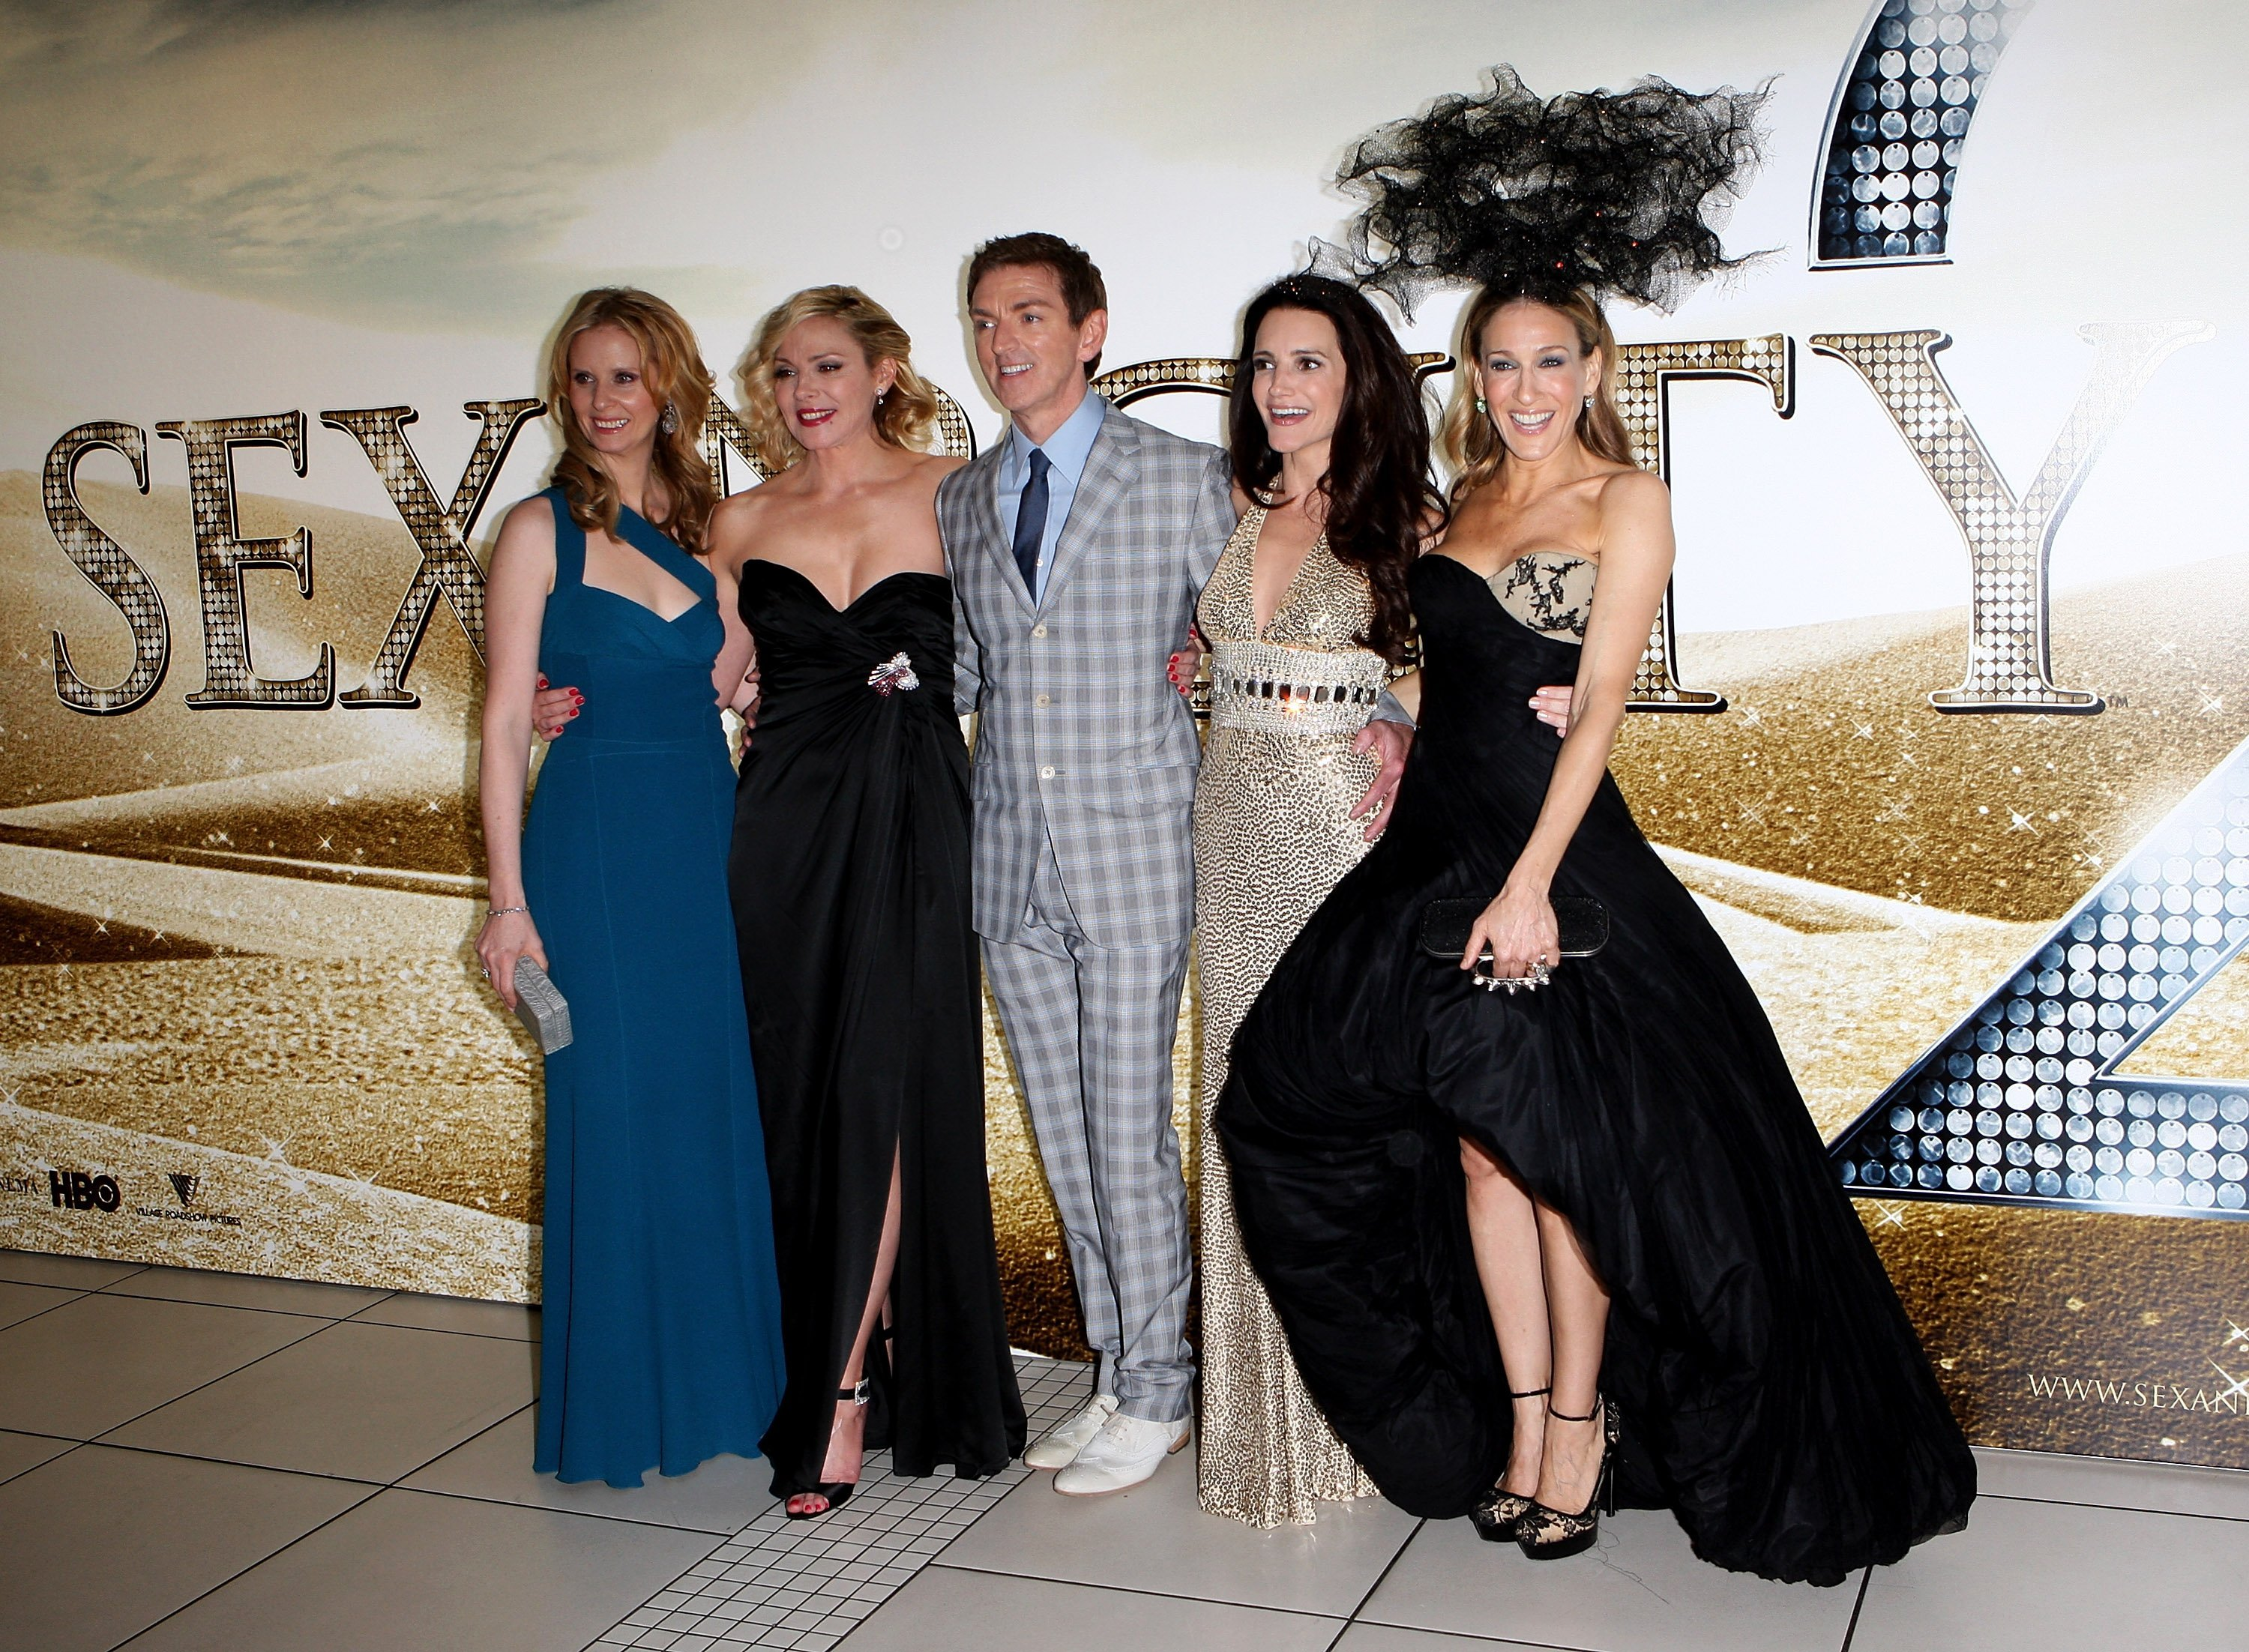 Producer Michael Patrick King (C) and actresses (from L) Cynthia Nixon, Kim Cattrall, Kristin Davis and Sarah Jessica Parker arrive at the UK premiere of 'Sex And The City 2' at Odeon Leicester Square on May 27, 2010, in London, England.   Source: Getty Images.